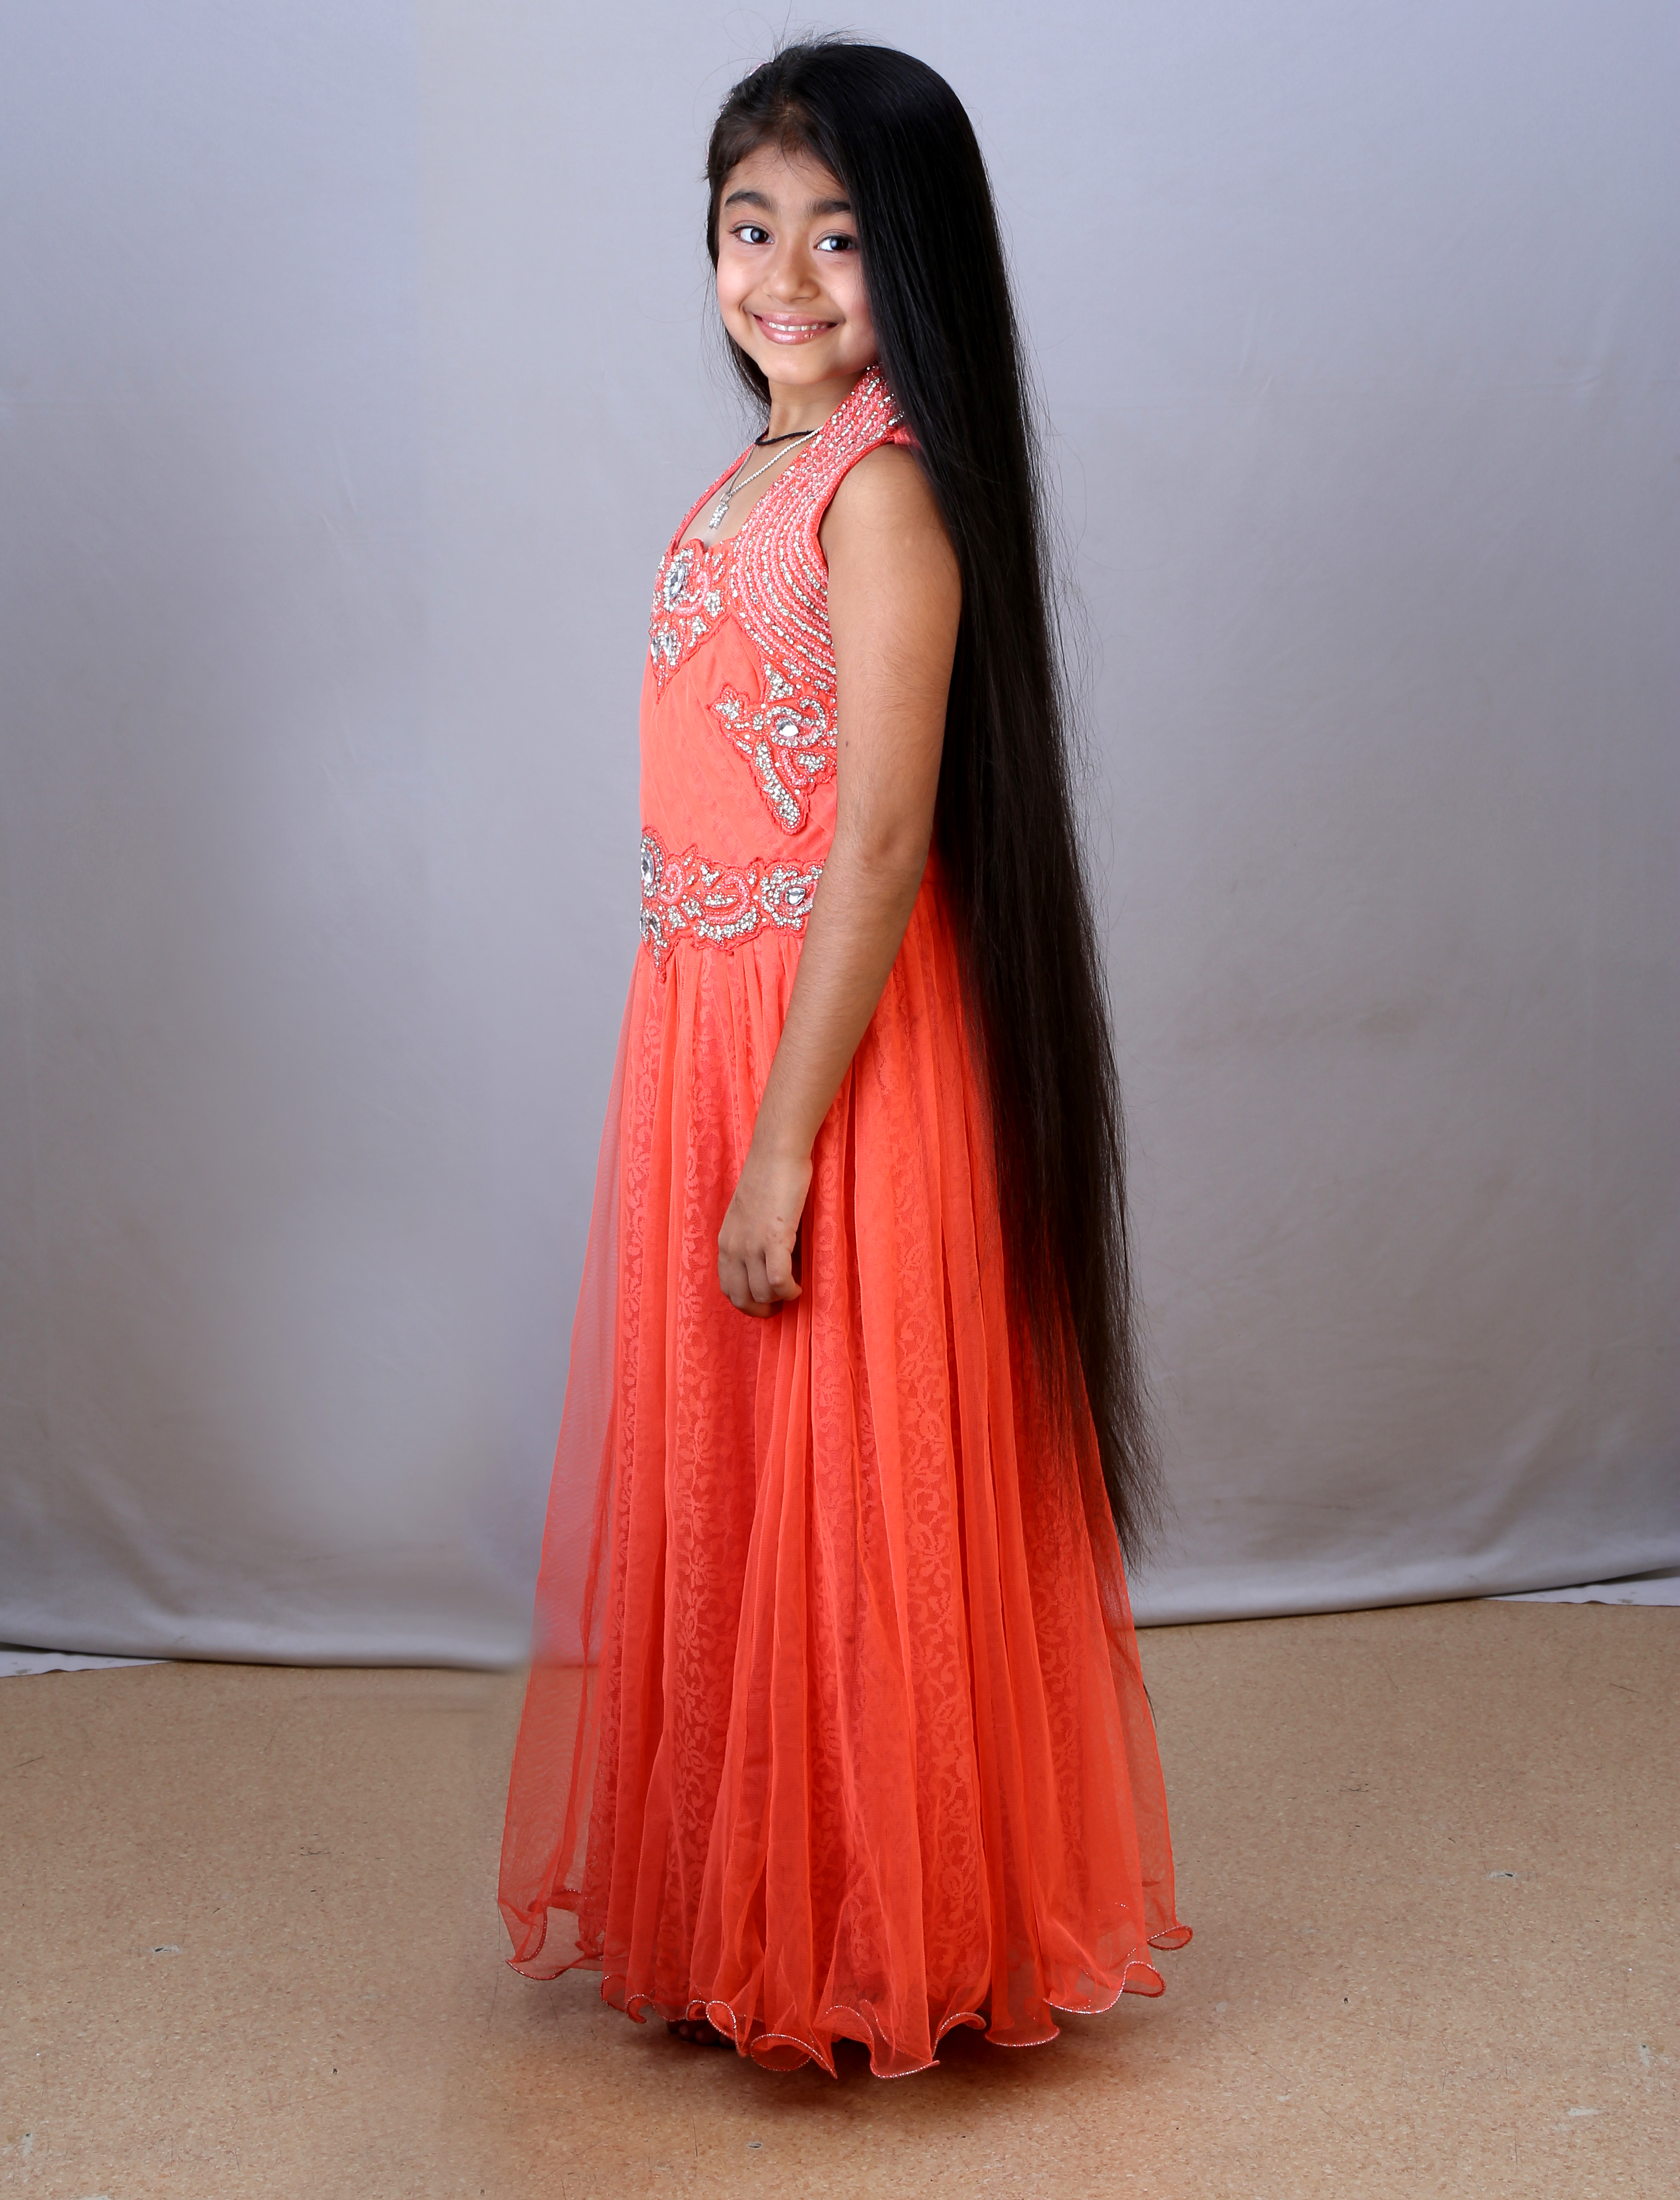 Longest Hair Among Children India Book Of Records